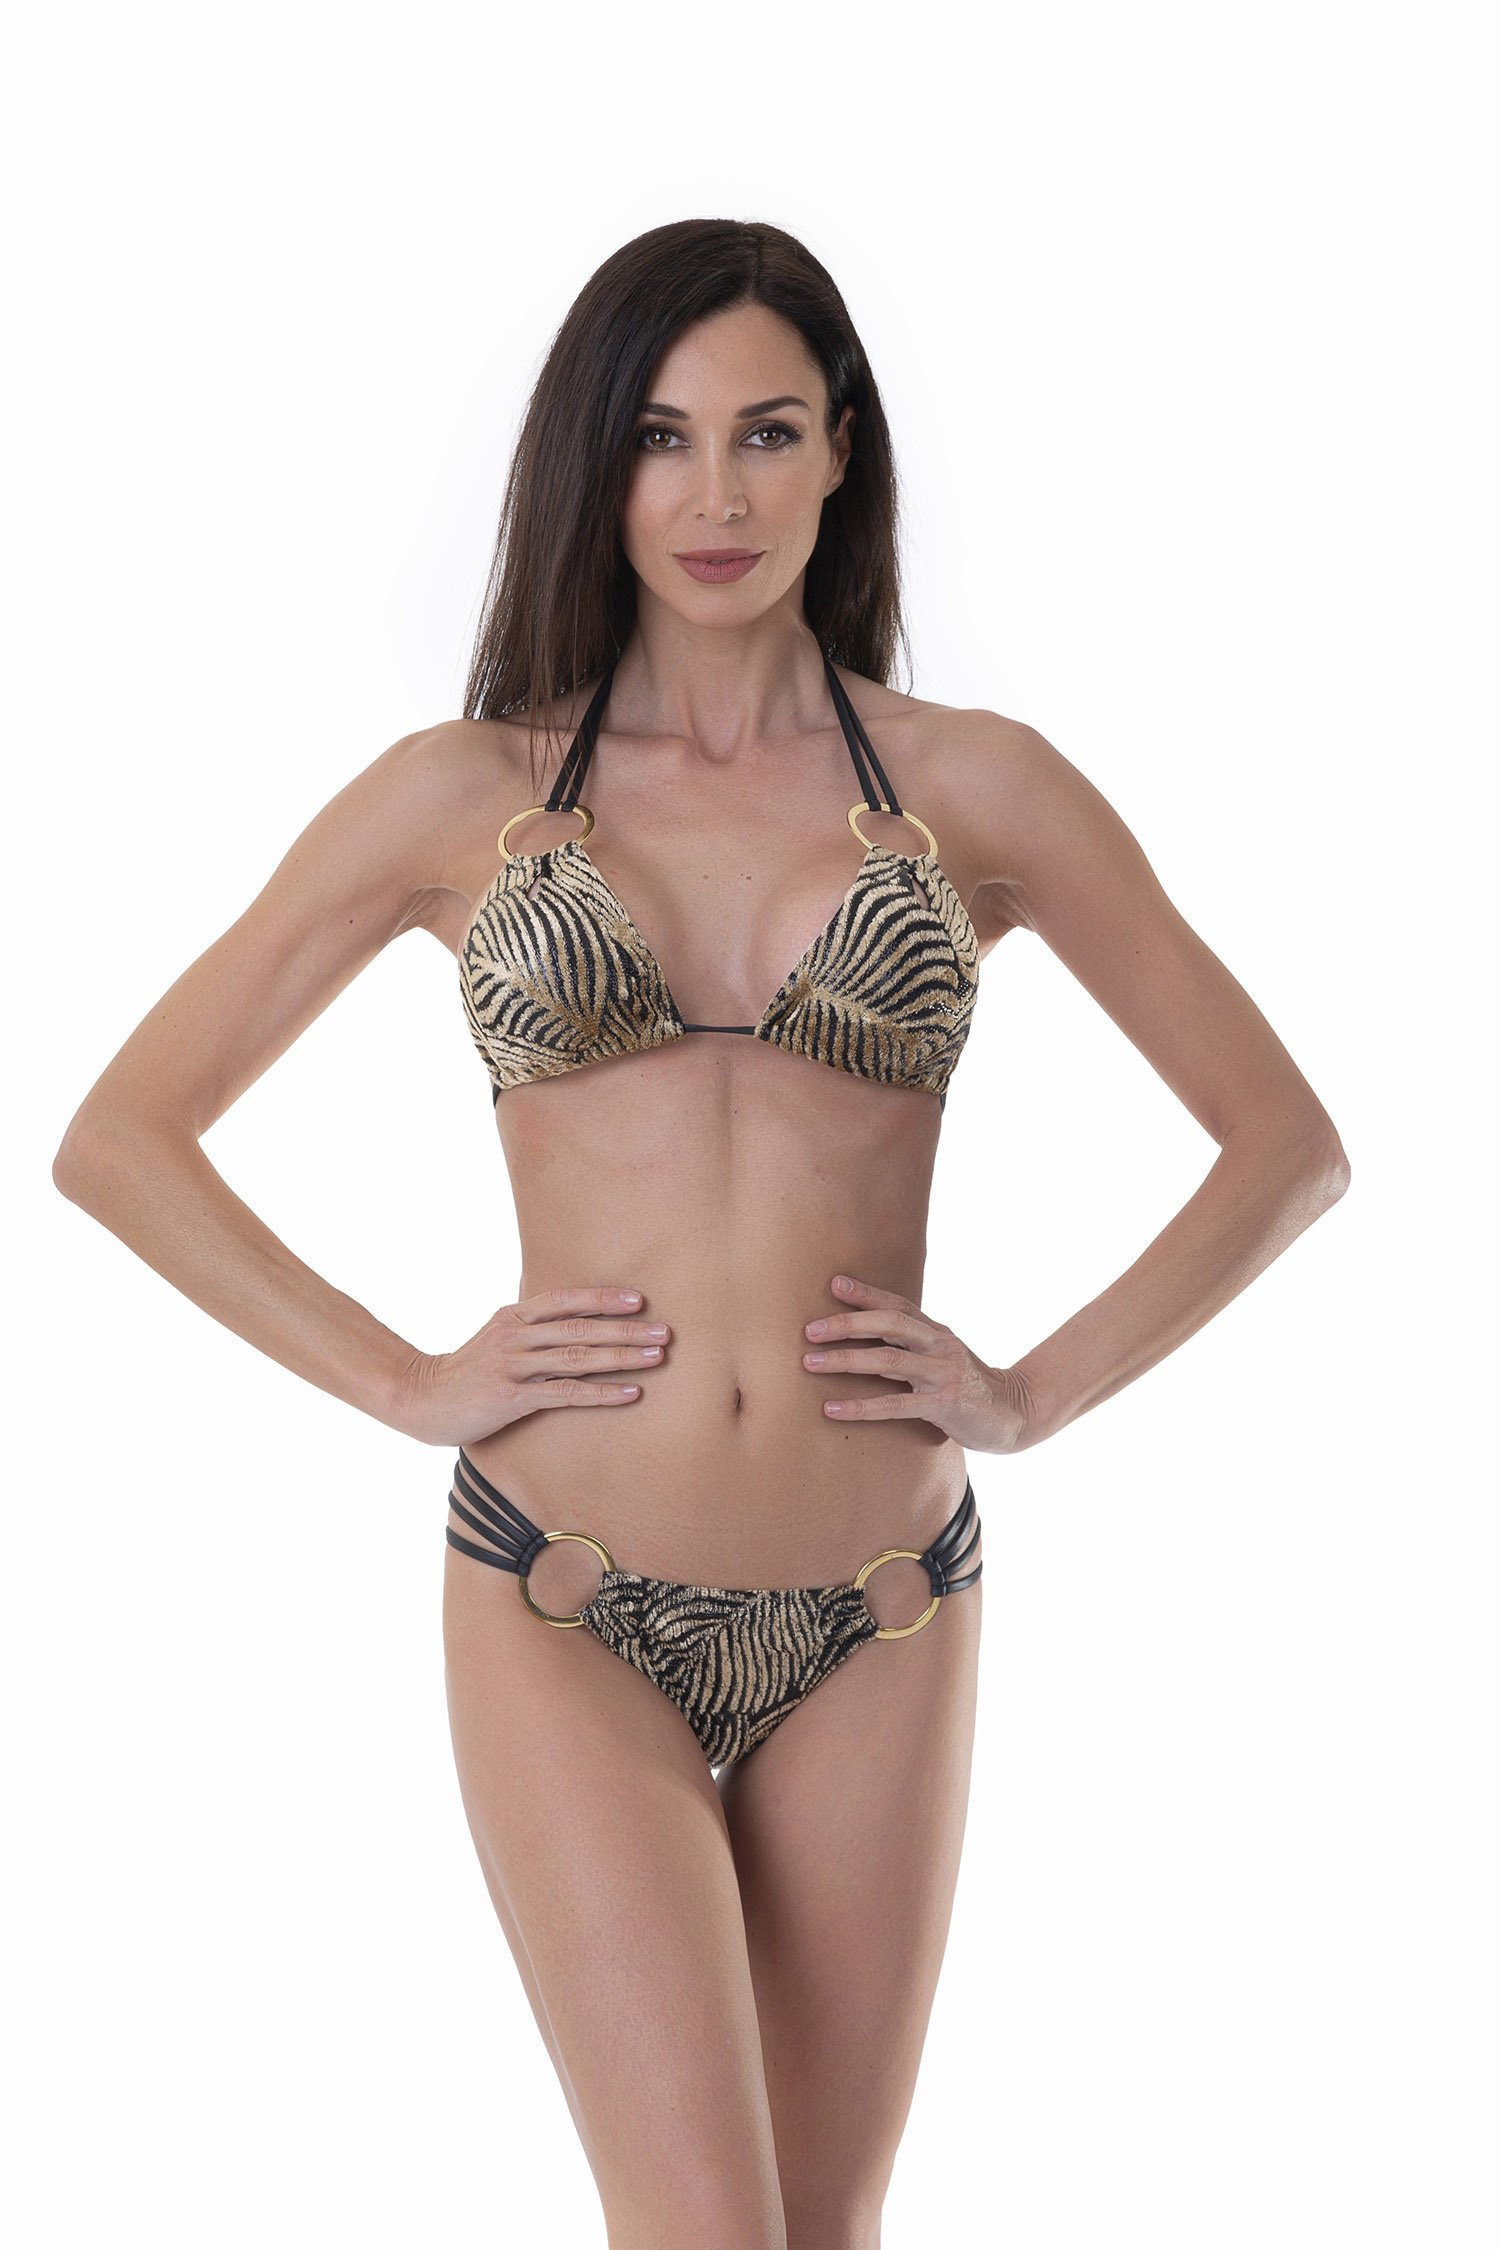 LUXE TRIANGLE BIKINI IN DEVORE' WITH METAL RINGS - Devore' Nero